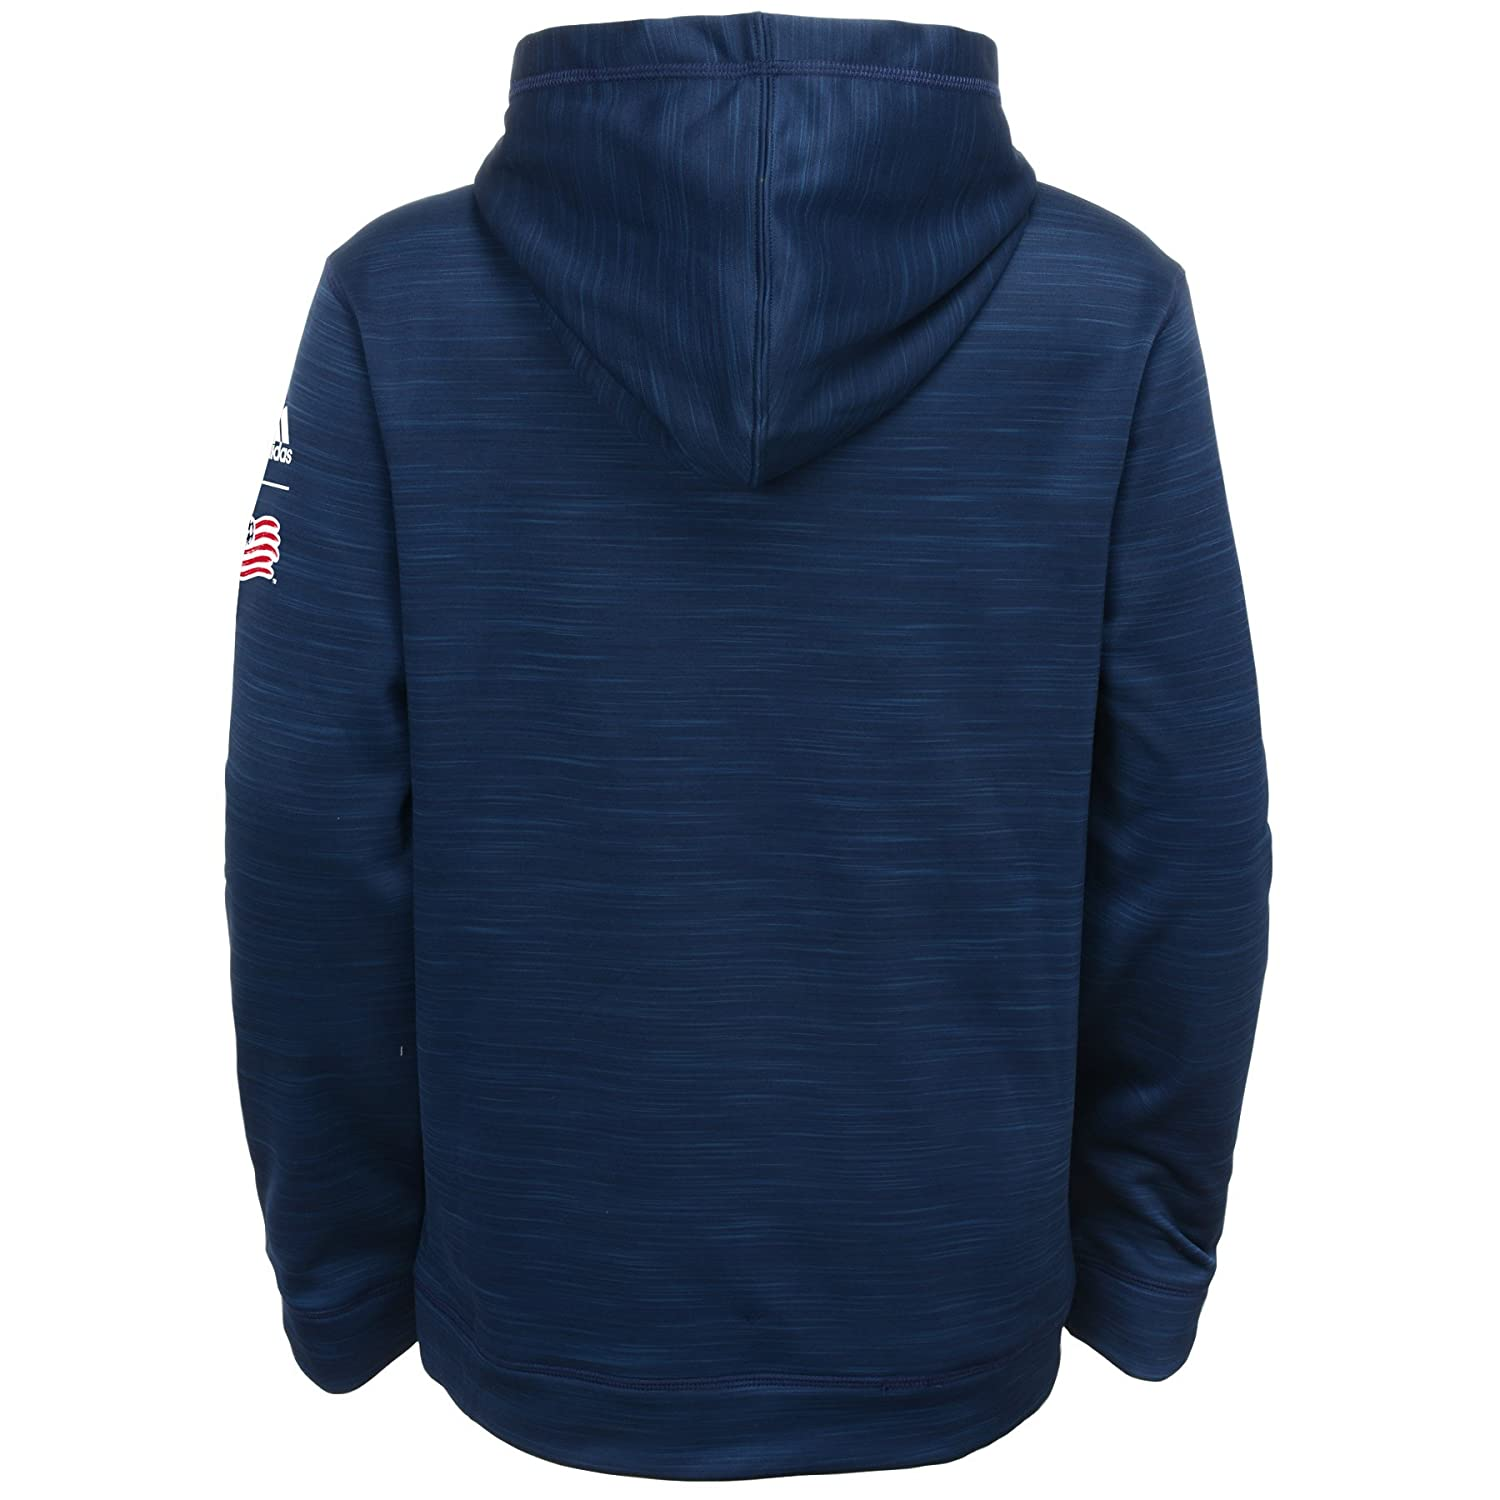 Heathered Collegiate Navy MLS by Outerstuff Boys Tactical Block Ultimate Hood 4 Kids Small